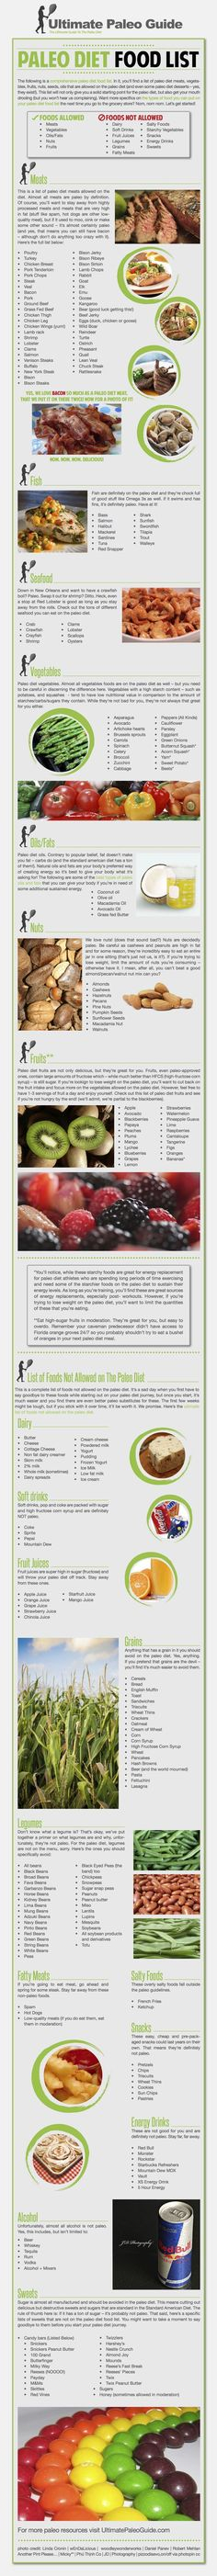 ♥ Paleo Diet Plan leads to Health Food Recipes and Good Diet Meals ♥ low carb no carb Recipes, Infographics & DAILY nutritional science news to help you #carbswitch carbswitch.com Please Repin